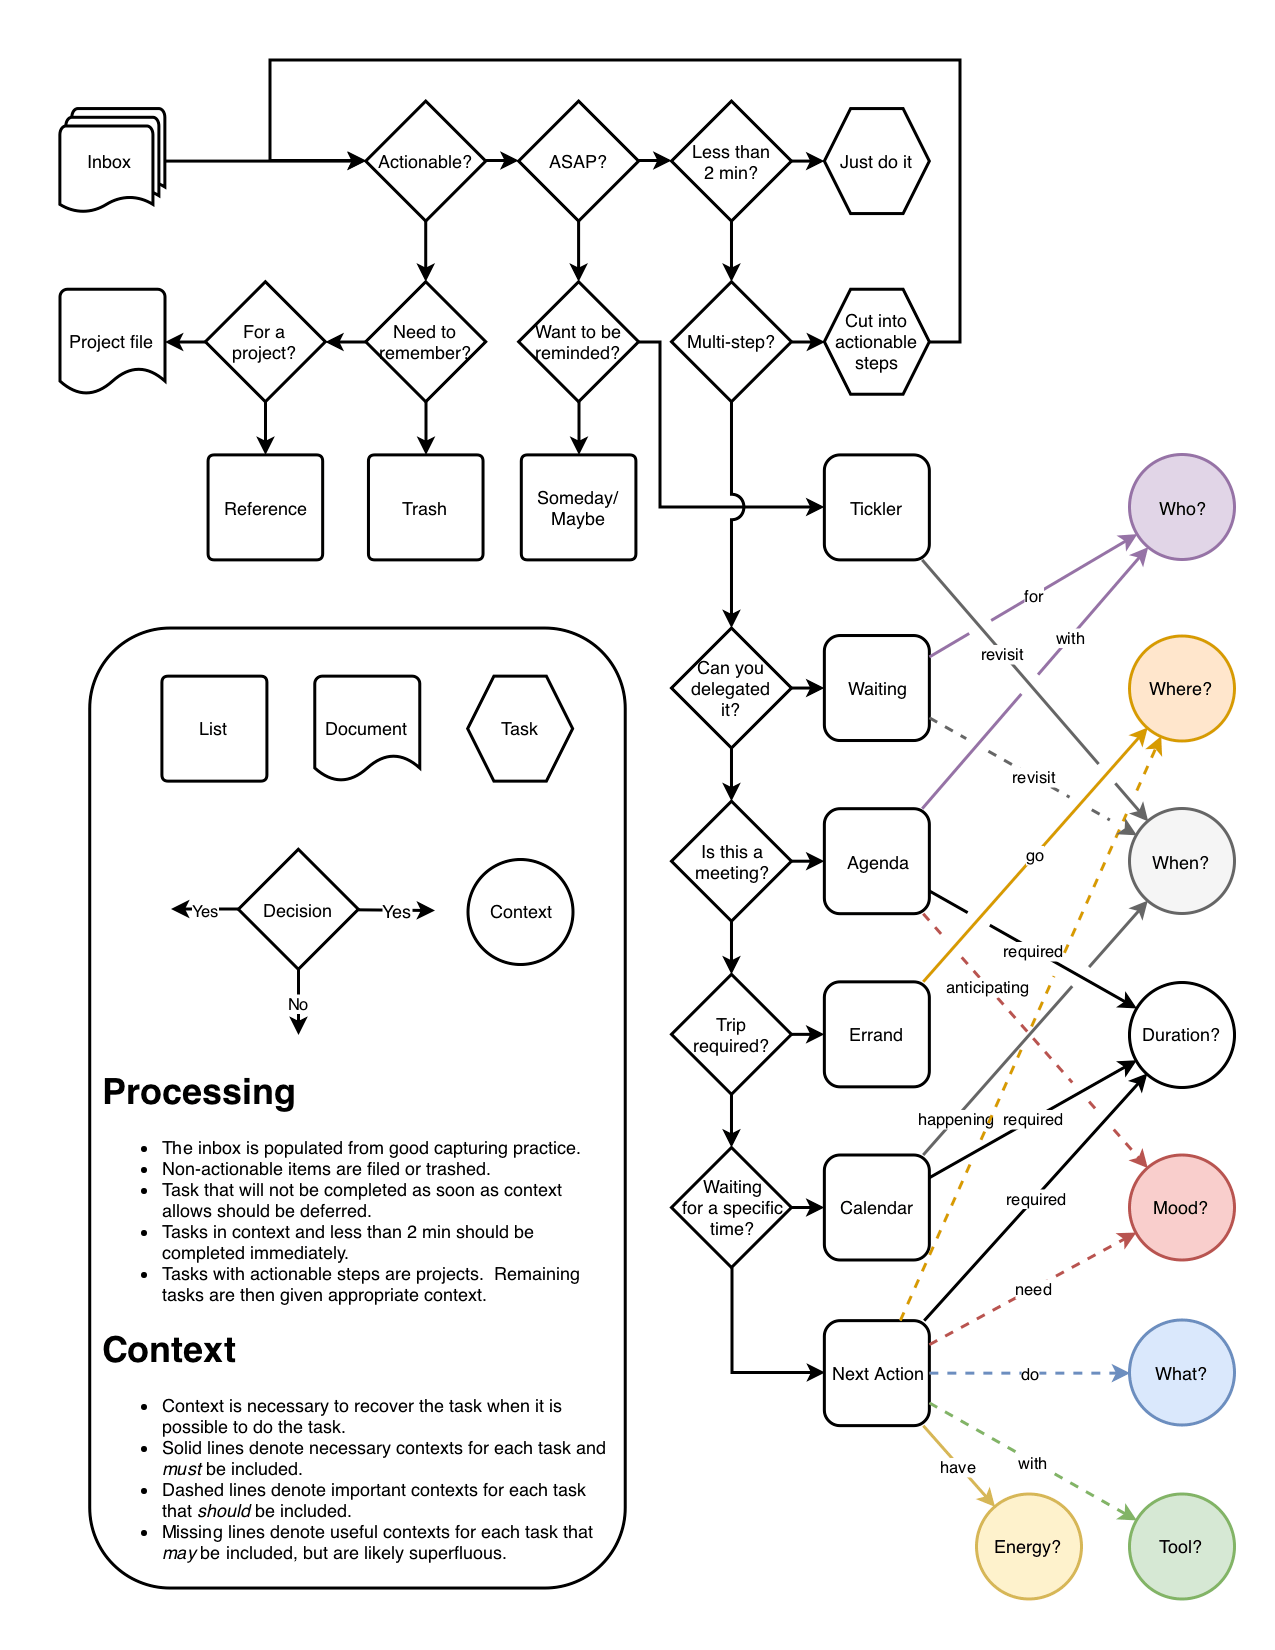 Processing Flow Chart I Made For Helping Choose Contexts Gtd